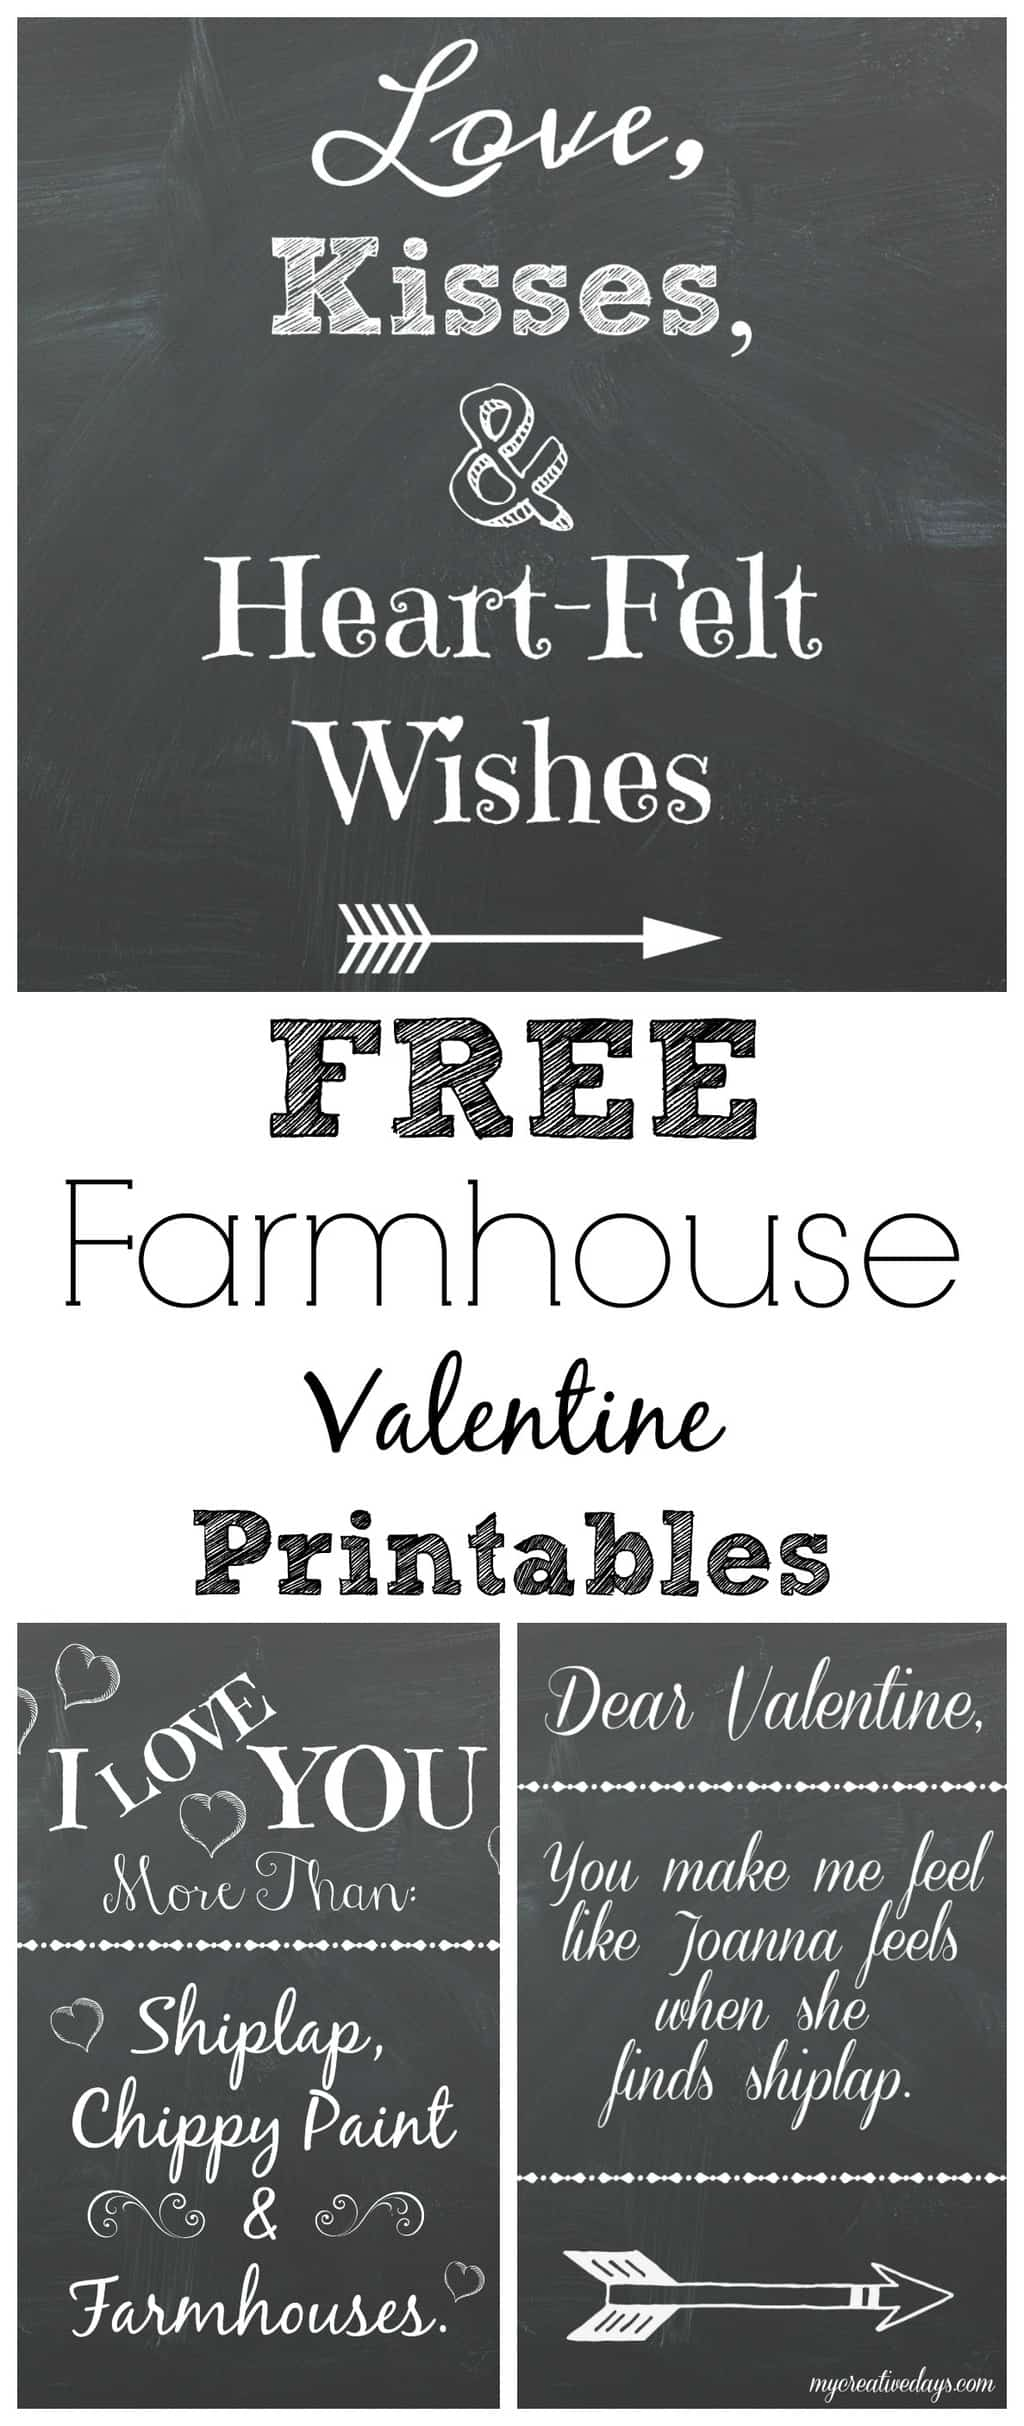 Valentine Printables With A Farmhouse Vibe My Creative Days